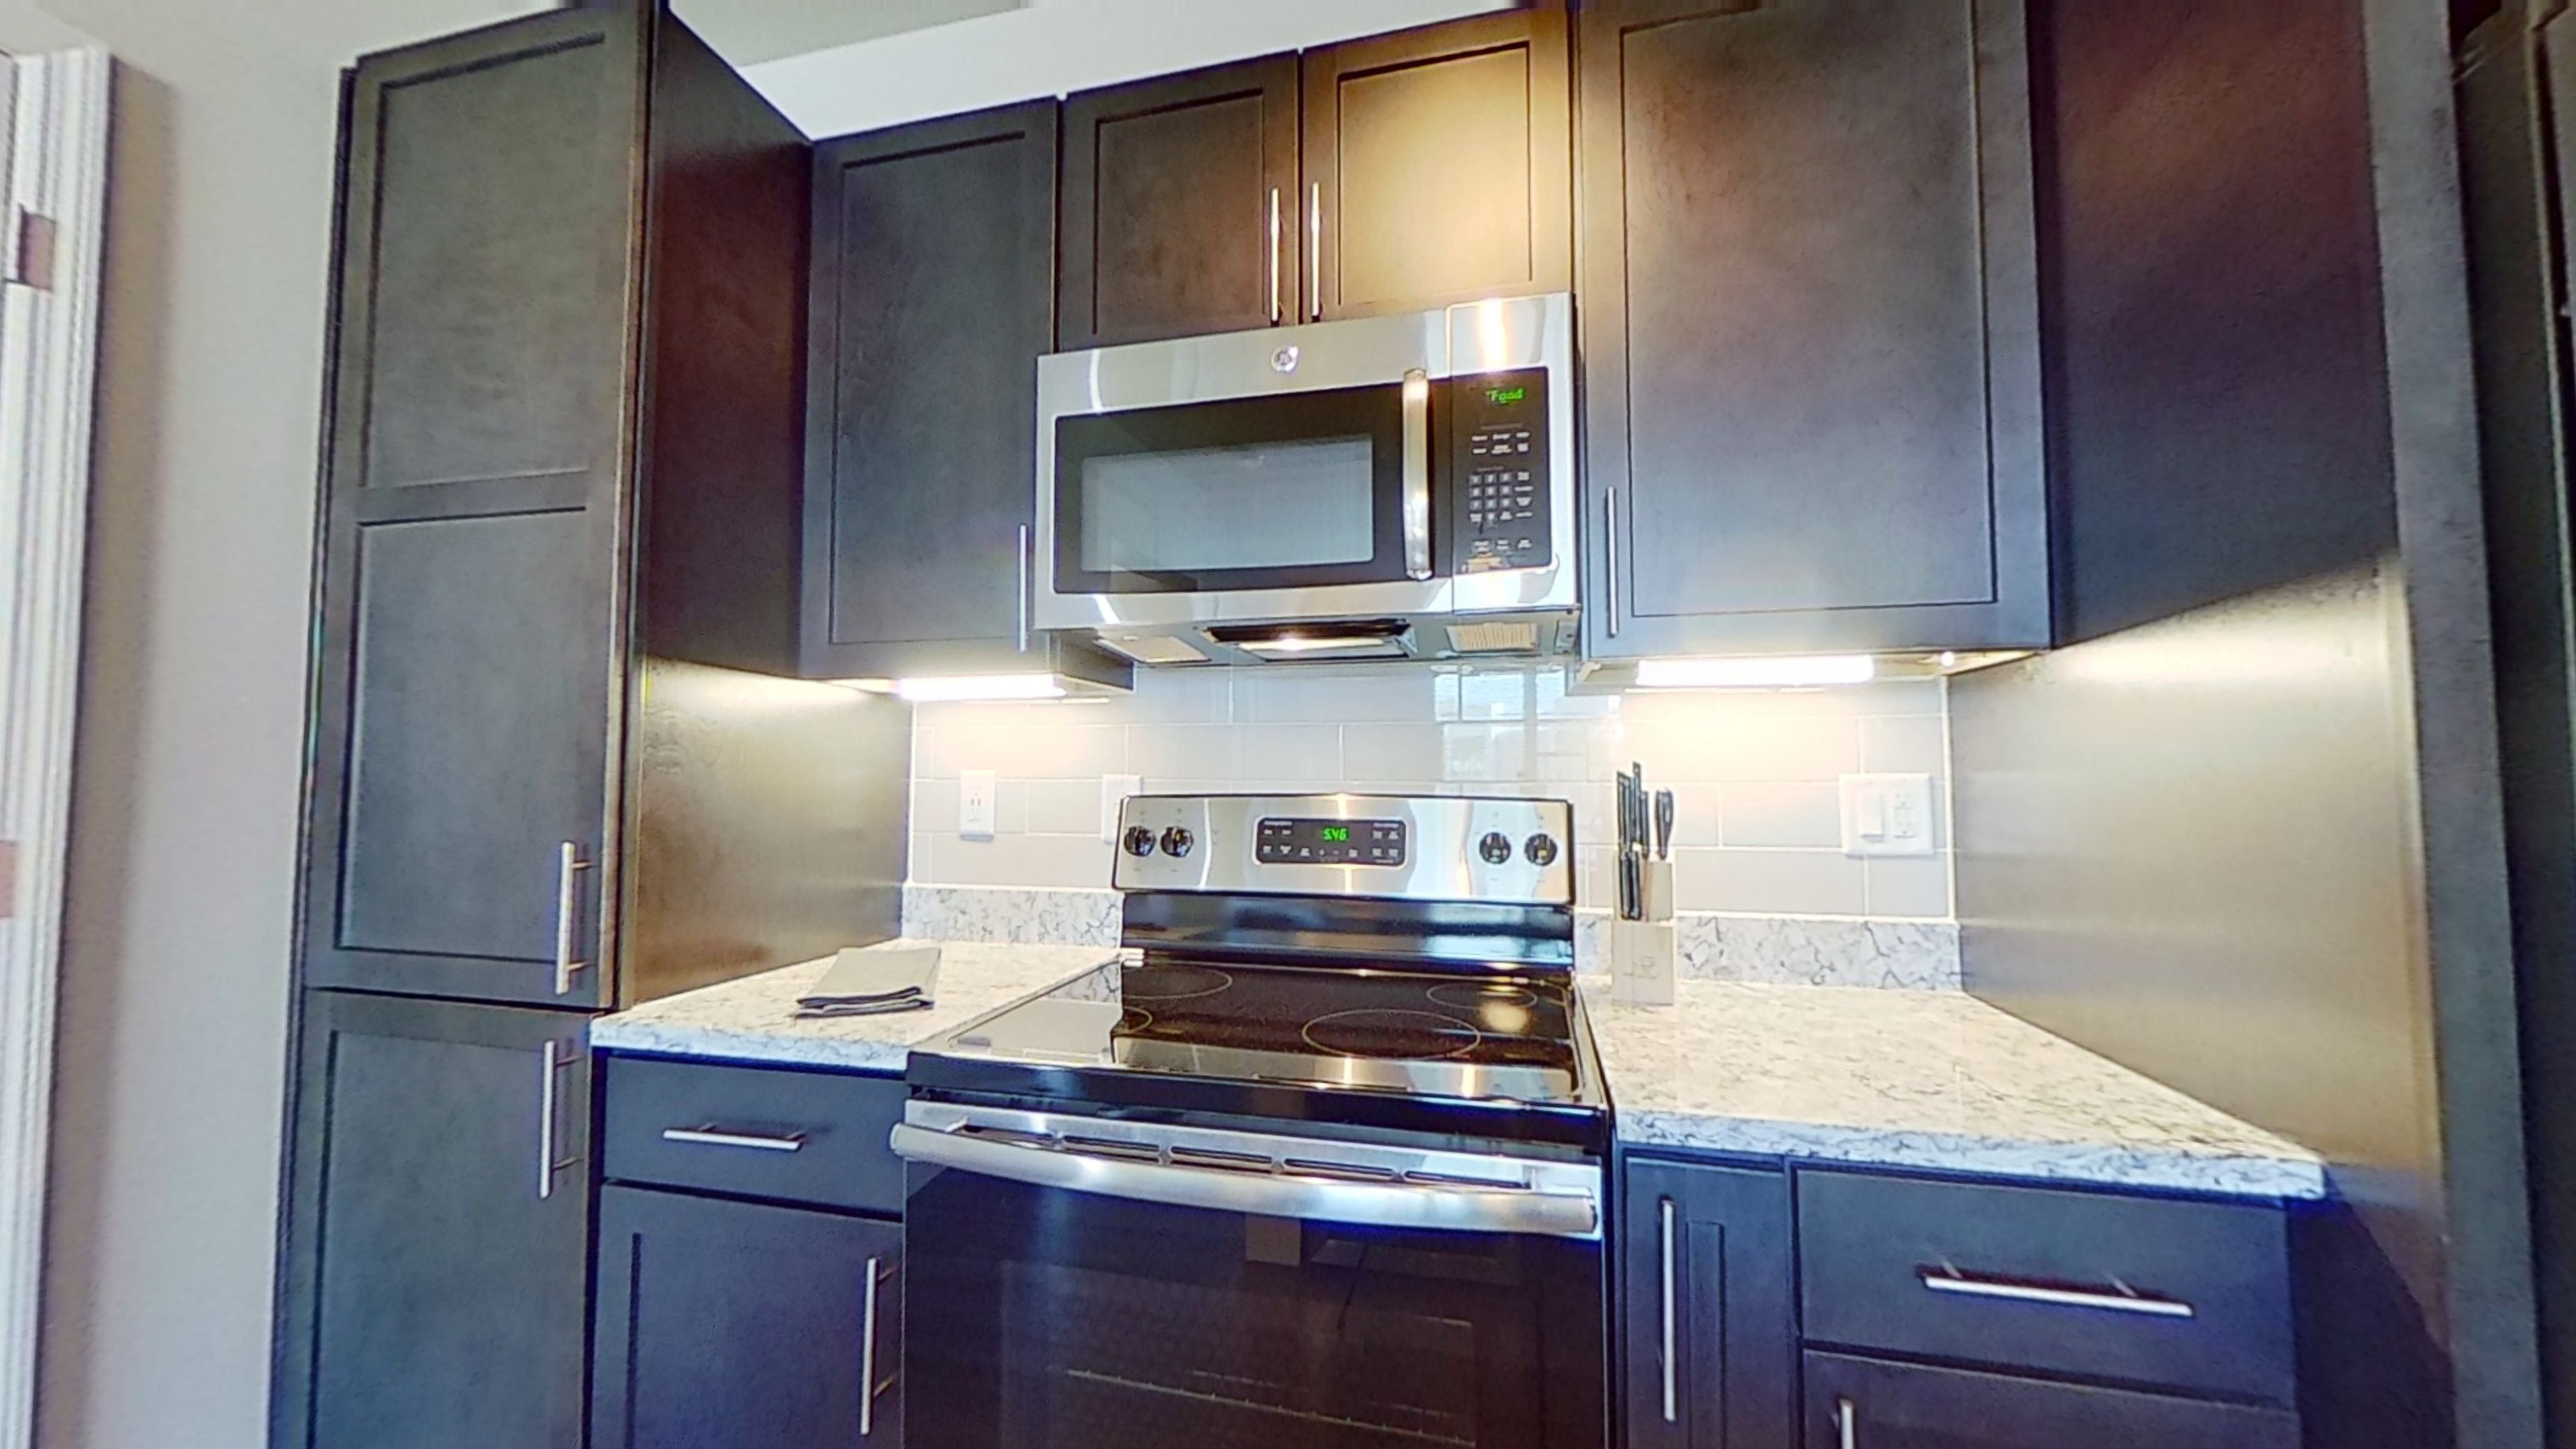 B1 Kitchen at the Vue at Creve Coeur Apartments in Creve Coeur, MO